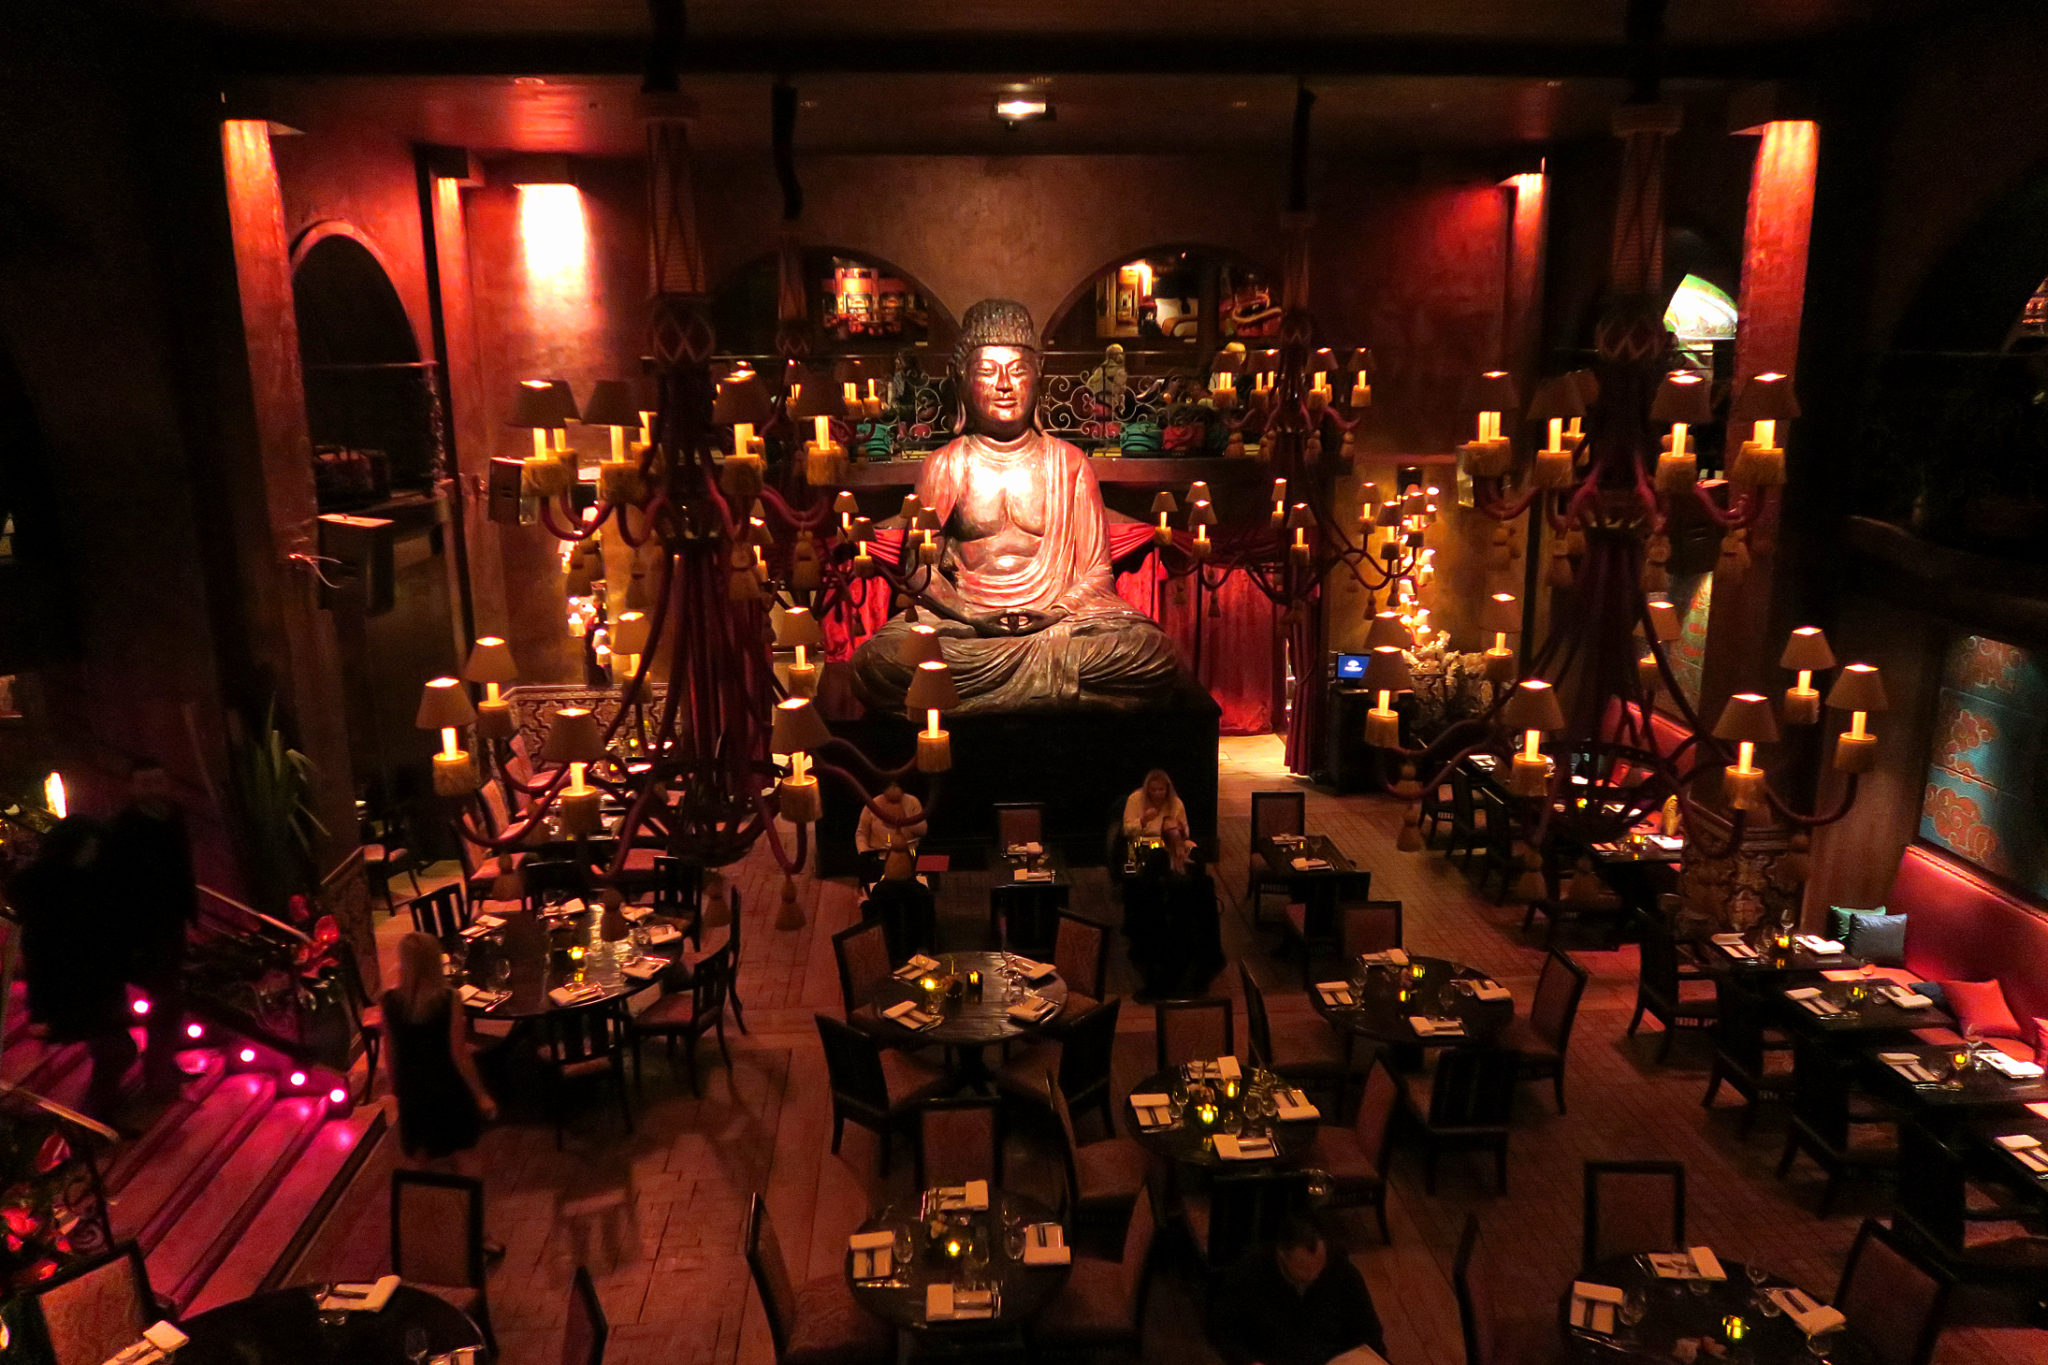 Hemaposesesvalises_buddha_bar_paris_interieur